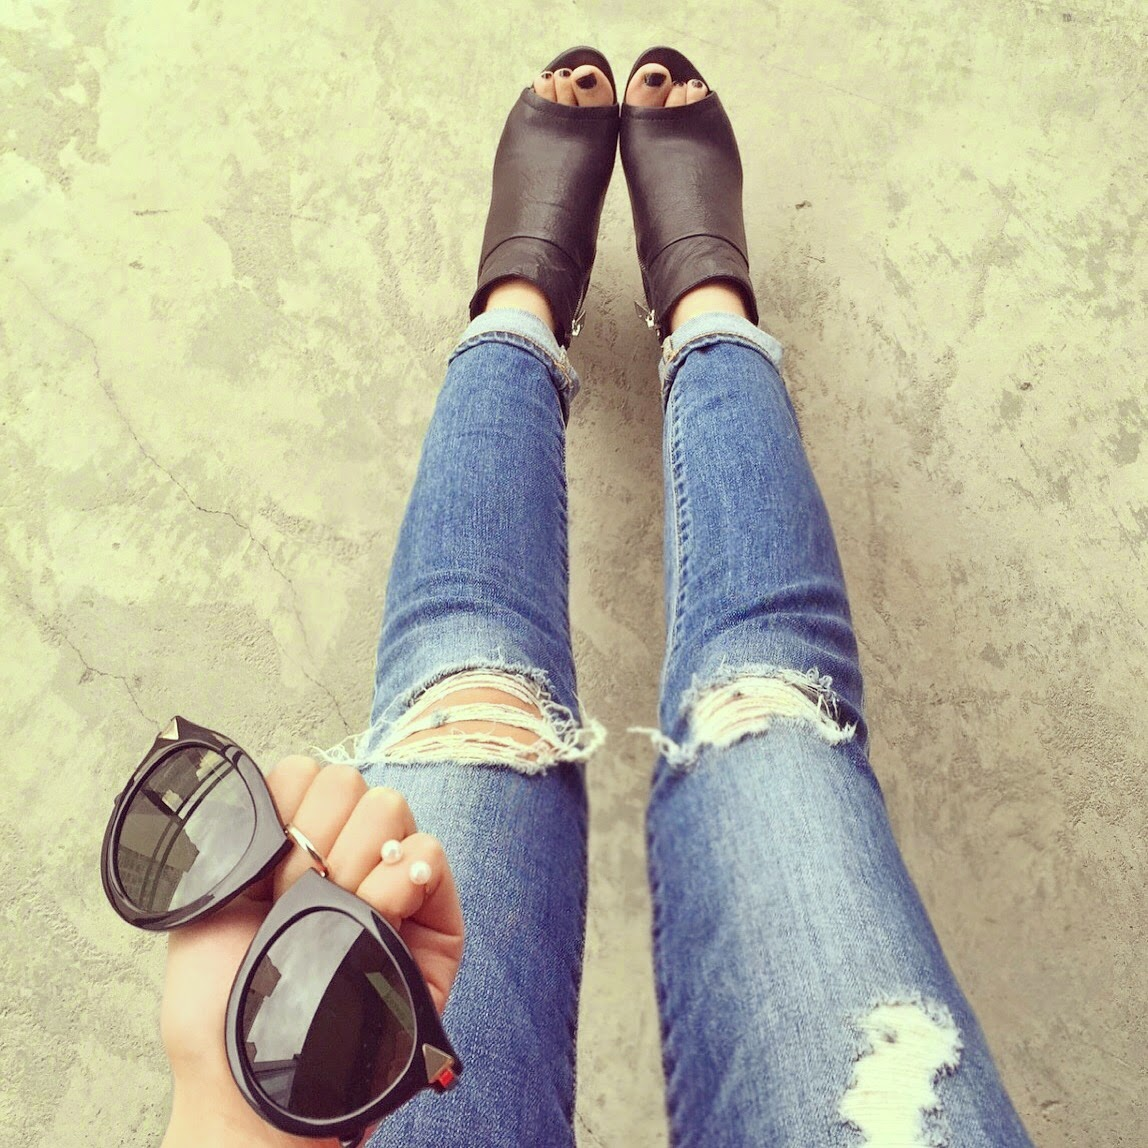 Dolce vita leka booties, peep toe bootie, dolce vita babe, karen walker harvest sunglasses, pearl ring, AG jeans, distressed jeans, ripped denim, fashion blog, from where i stand